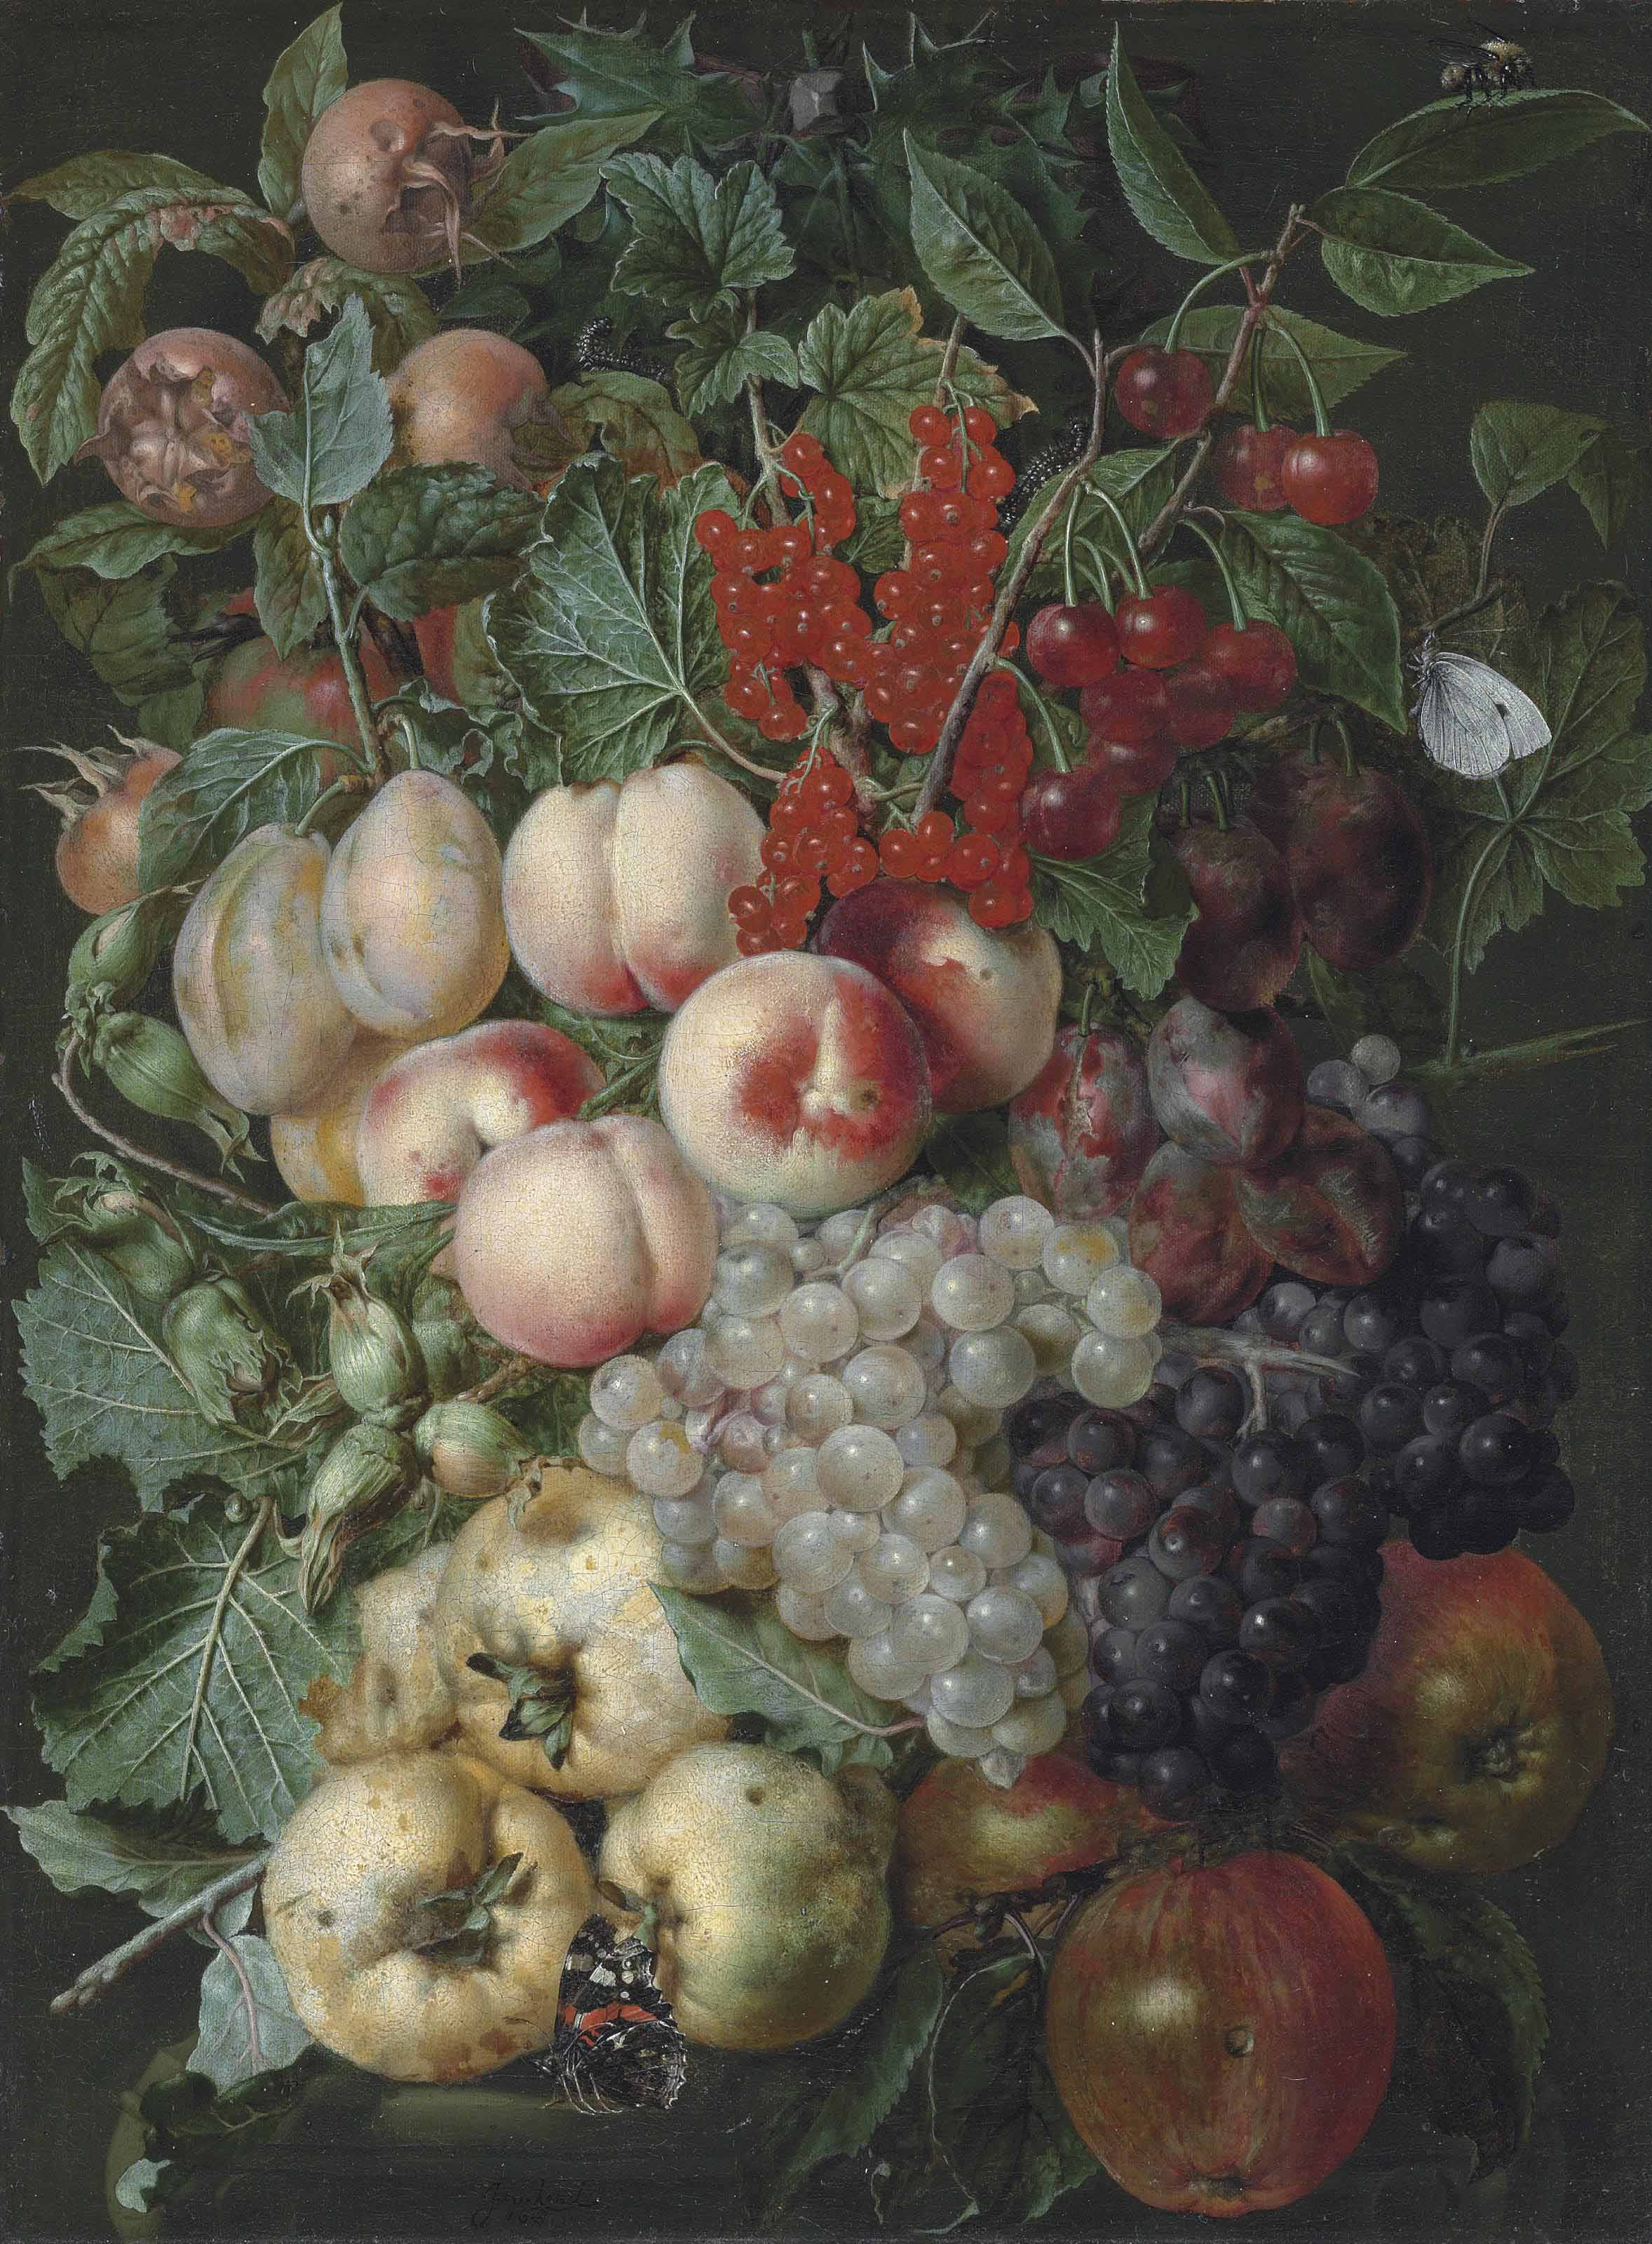 Grapes, peaches, hazelnuts, quinces, redcurrants and other fruit, with a brimstone butterfly, a bumblebee and other insects on a stone capital